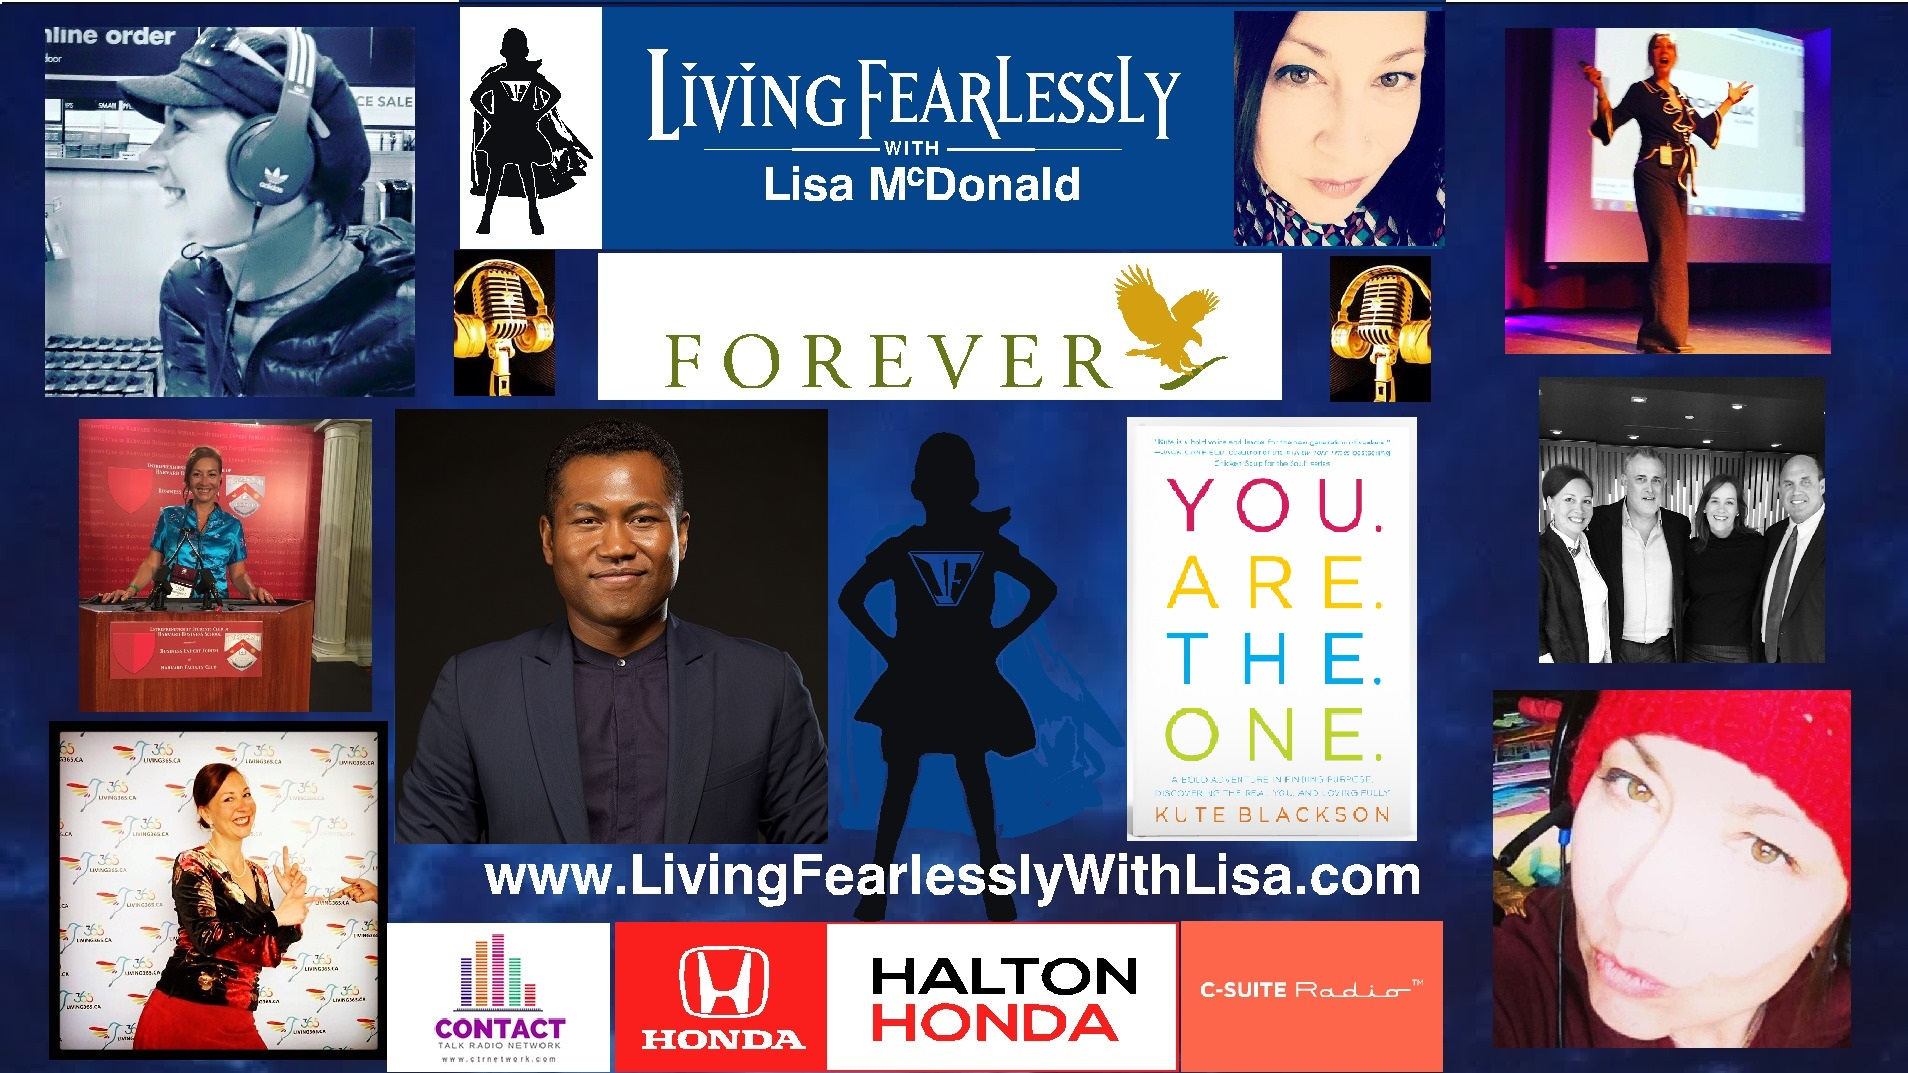 Kute Blackson on Living Fearlessly with Lisa McDonald 3-30-18